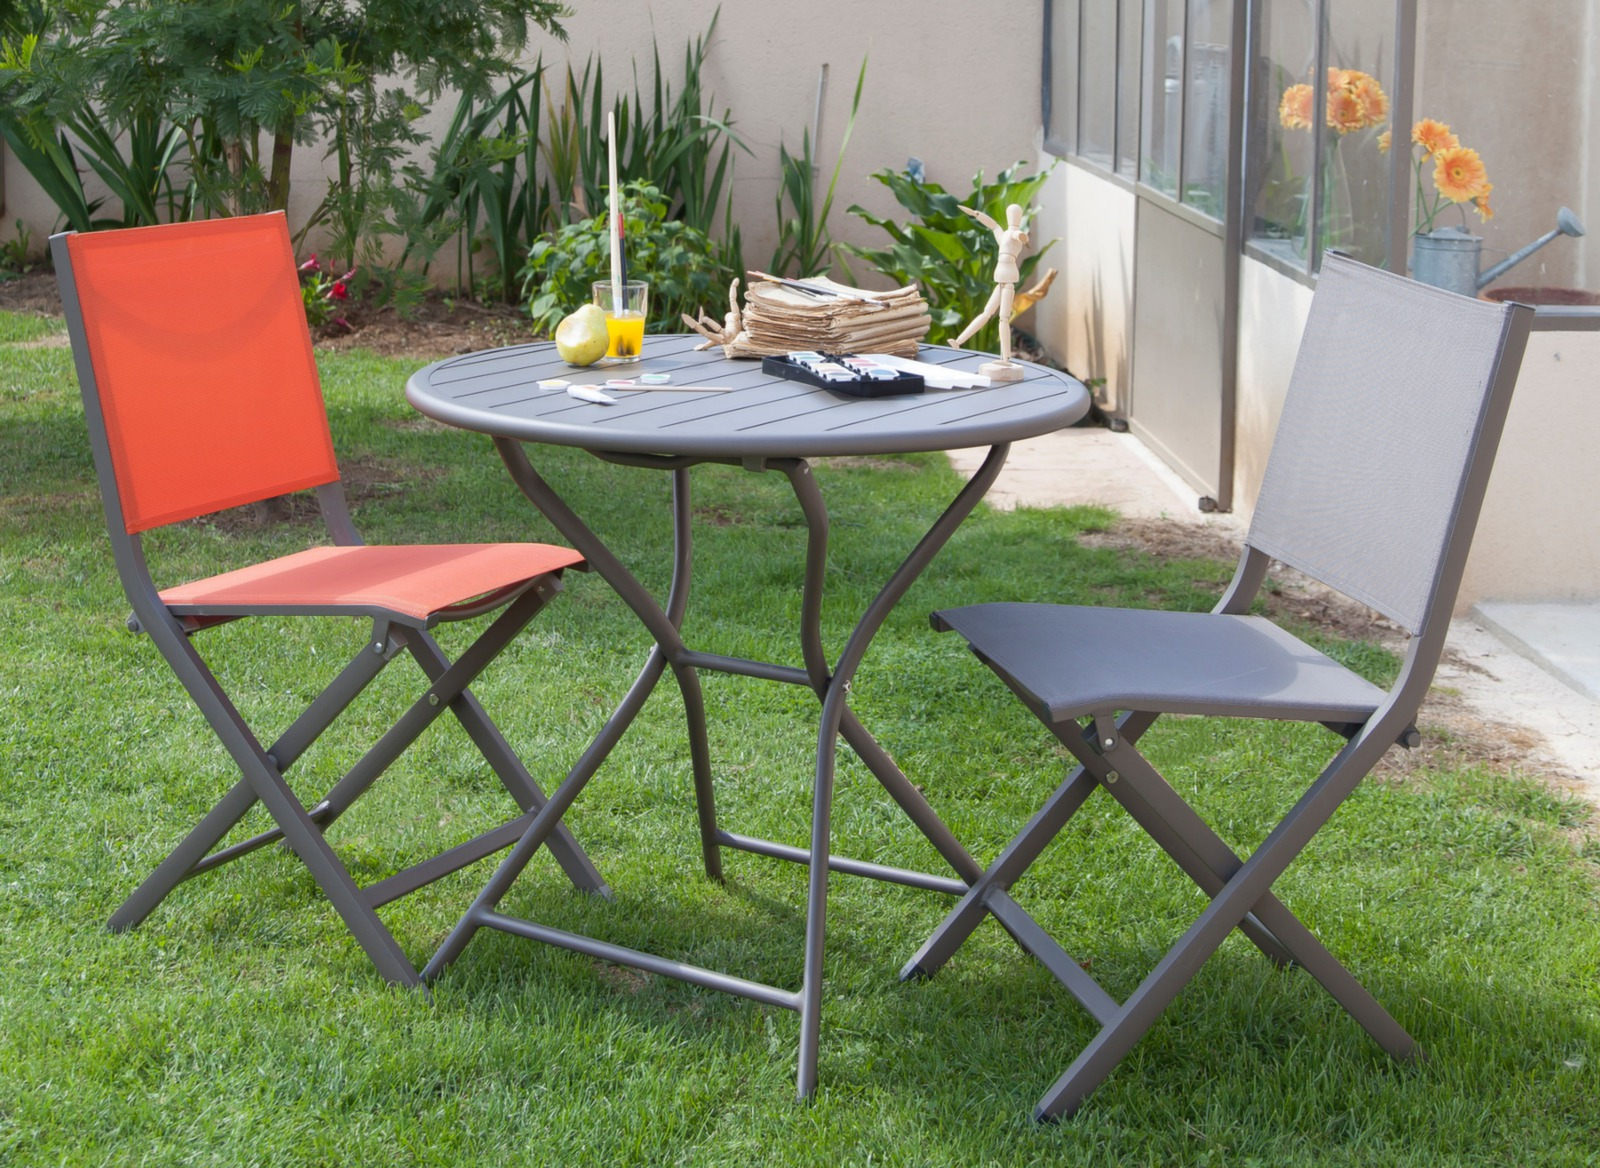 Chaises de jardin en aluminium thema proloisirs for Table pliante chaise integree